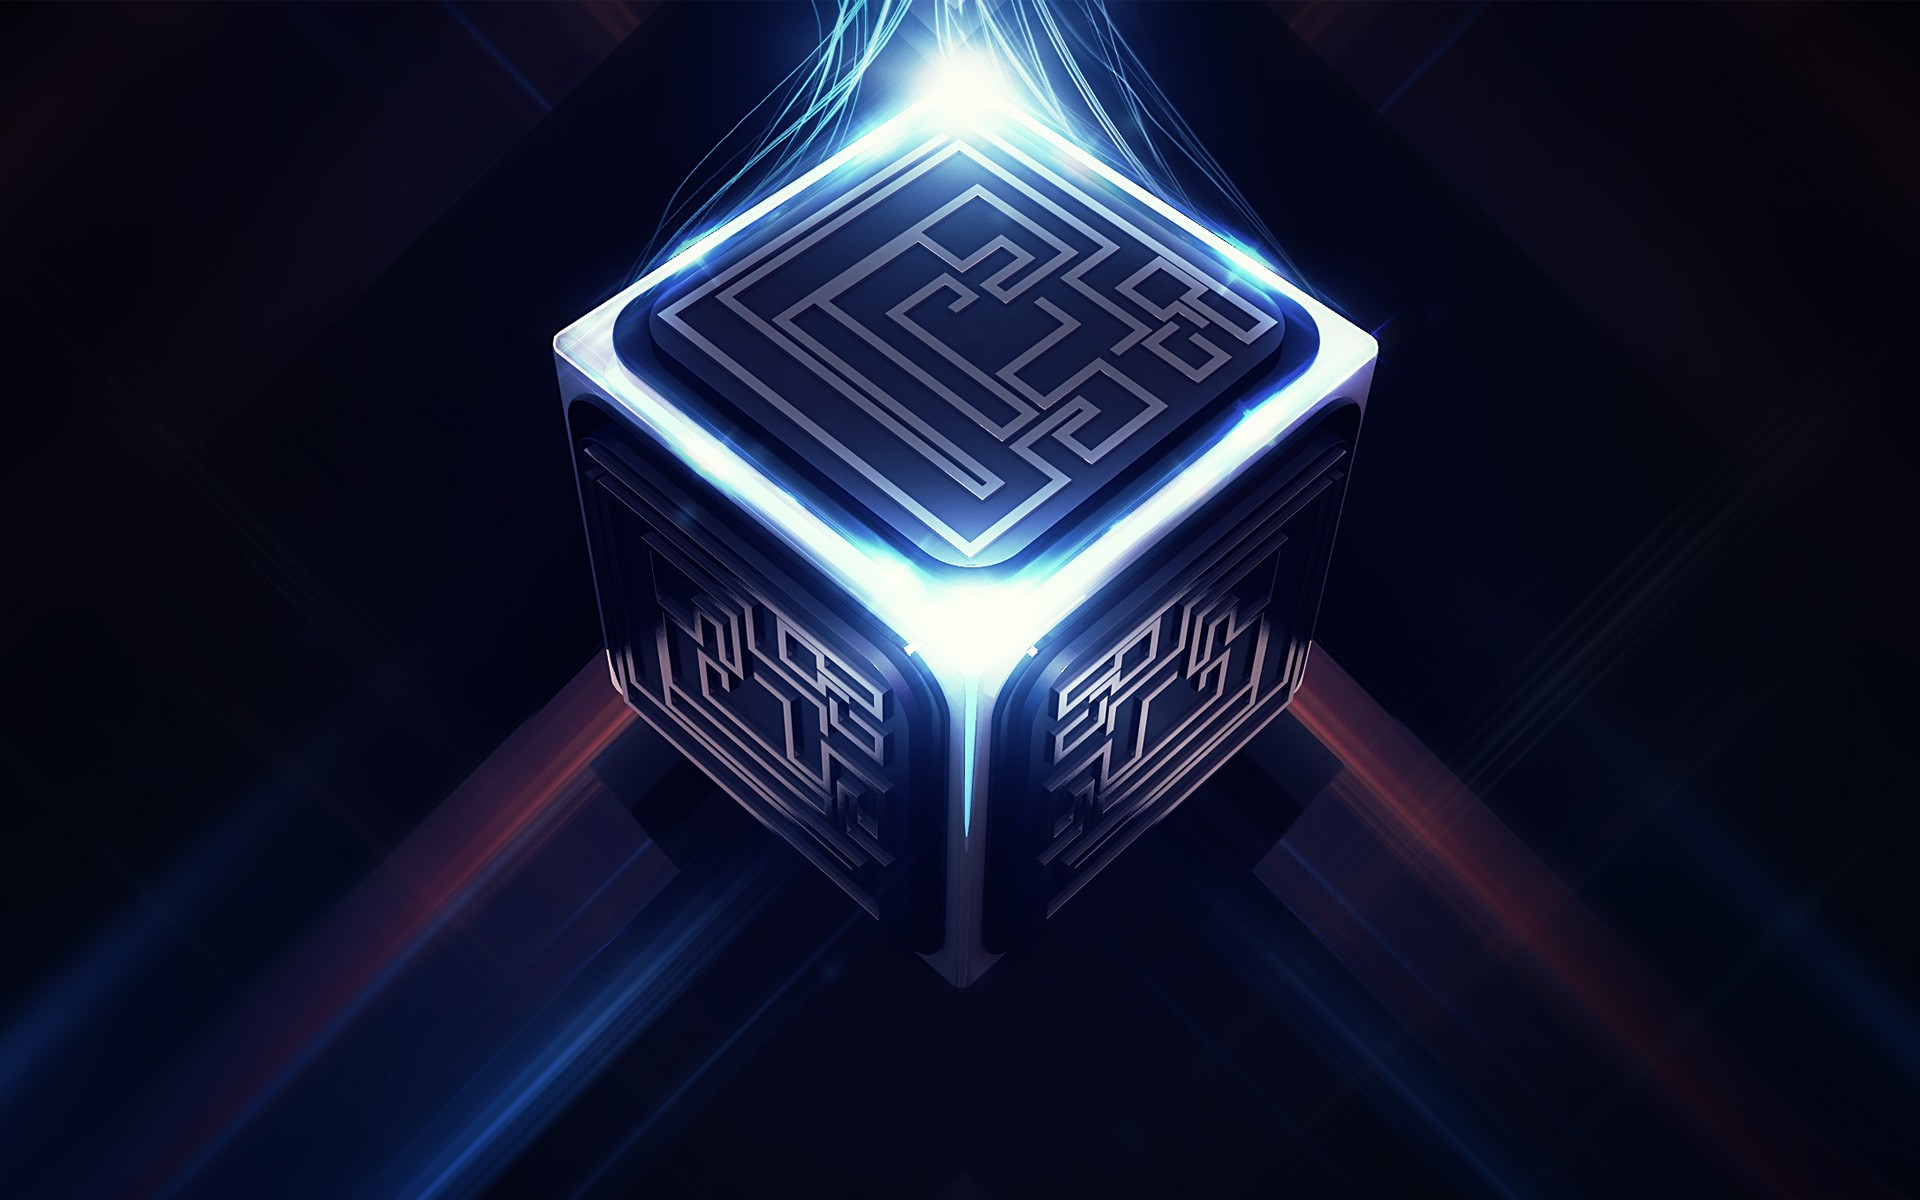 3d Cube Wallpaper Fantasy Art Digital Art Pixelated Science Fiction